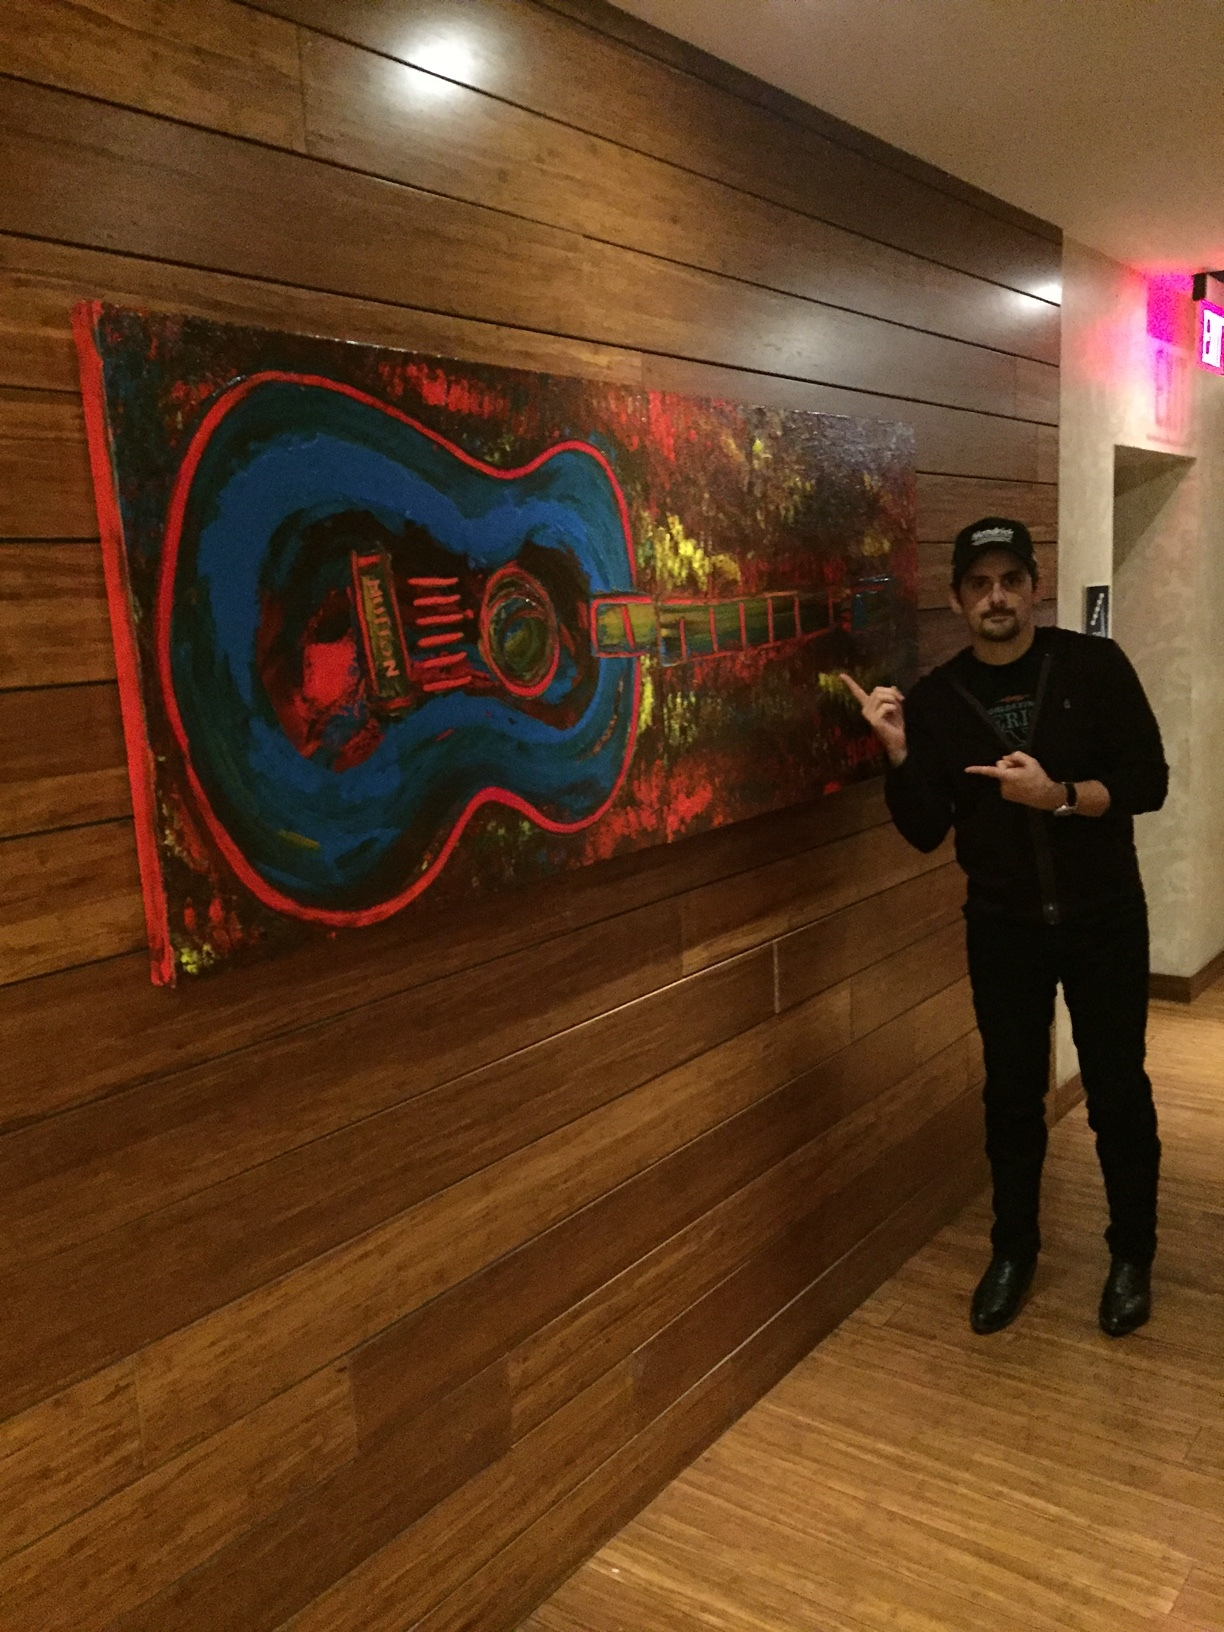 Brad Paisley shoutout to Hendon's work at The Hutton Hotel